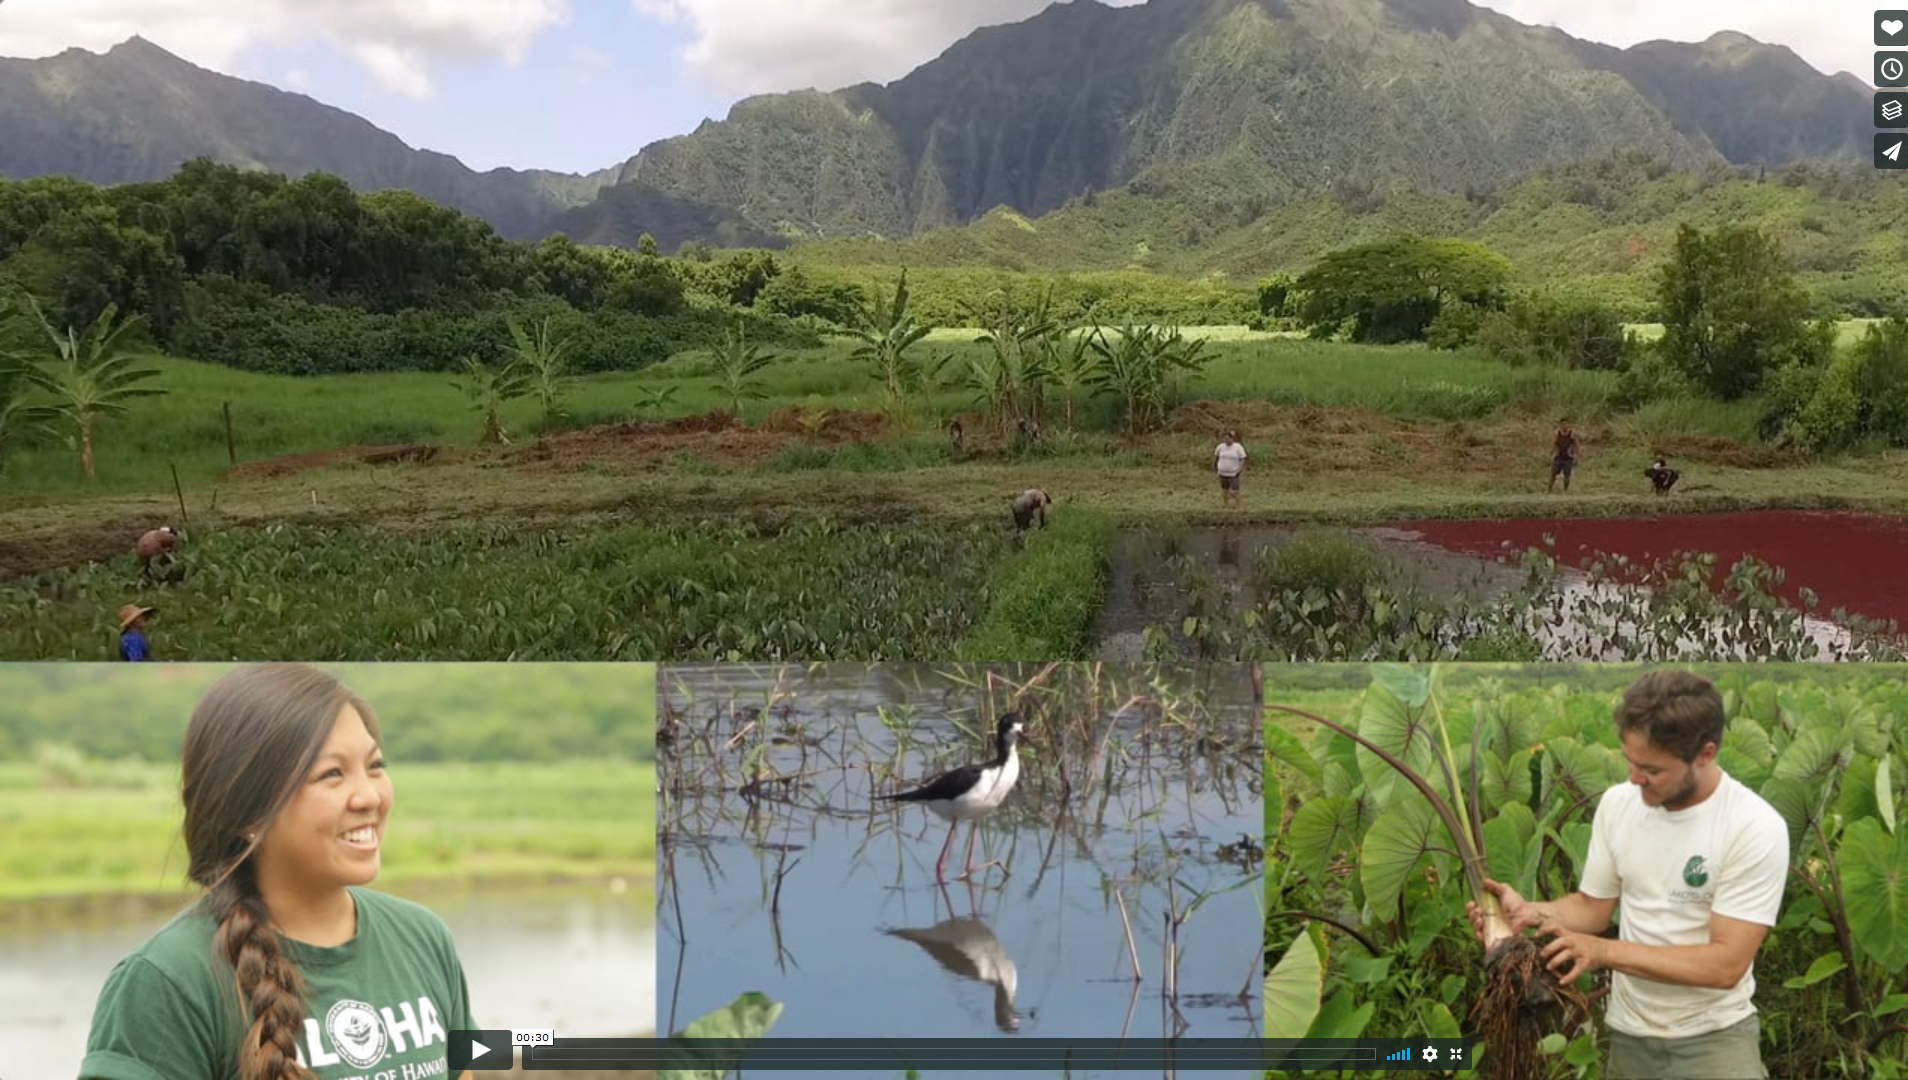 voice of the sea, season 6, wpisode 1 is titled Hidden Benefits of Farming Kalo. composit photo of mountains, taro farm, people working, and native bird.